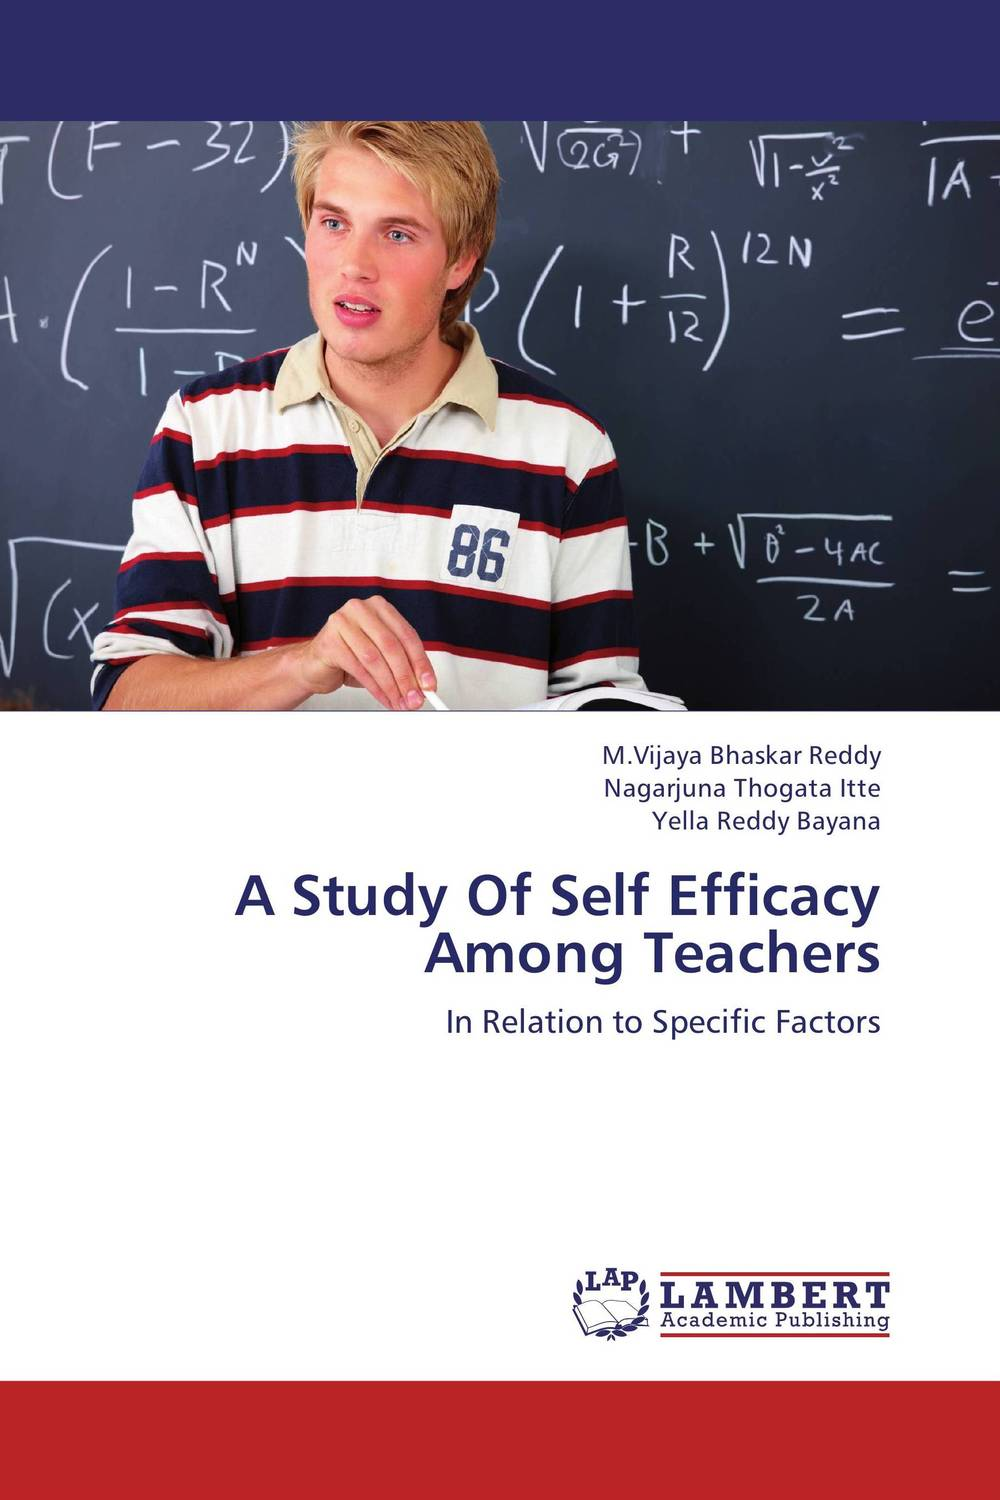 A Study Of Self Efficacy Among Teachers